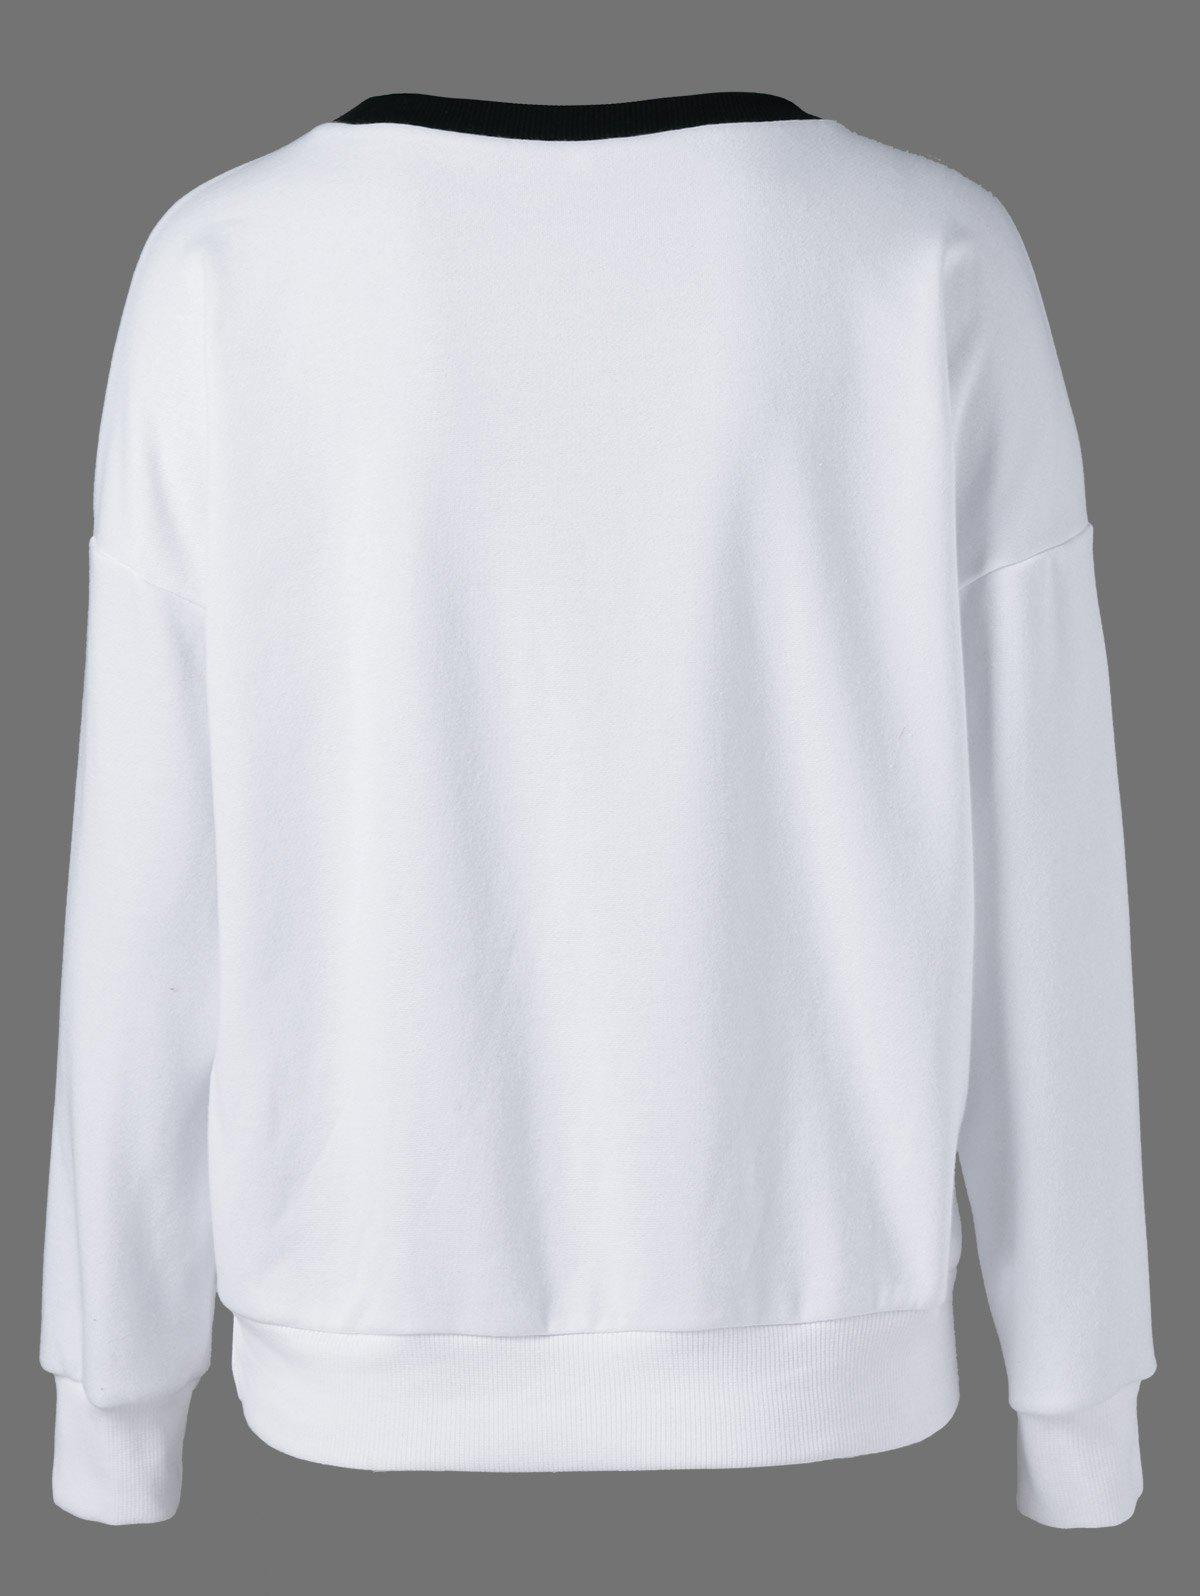 Drop Shoulder Sweatshirt - WHITE/BLACK XL